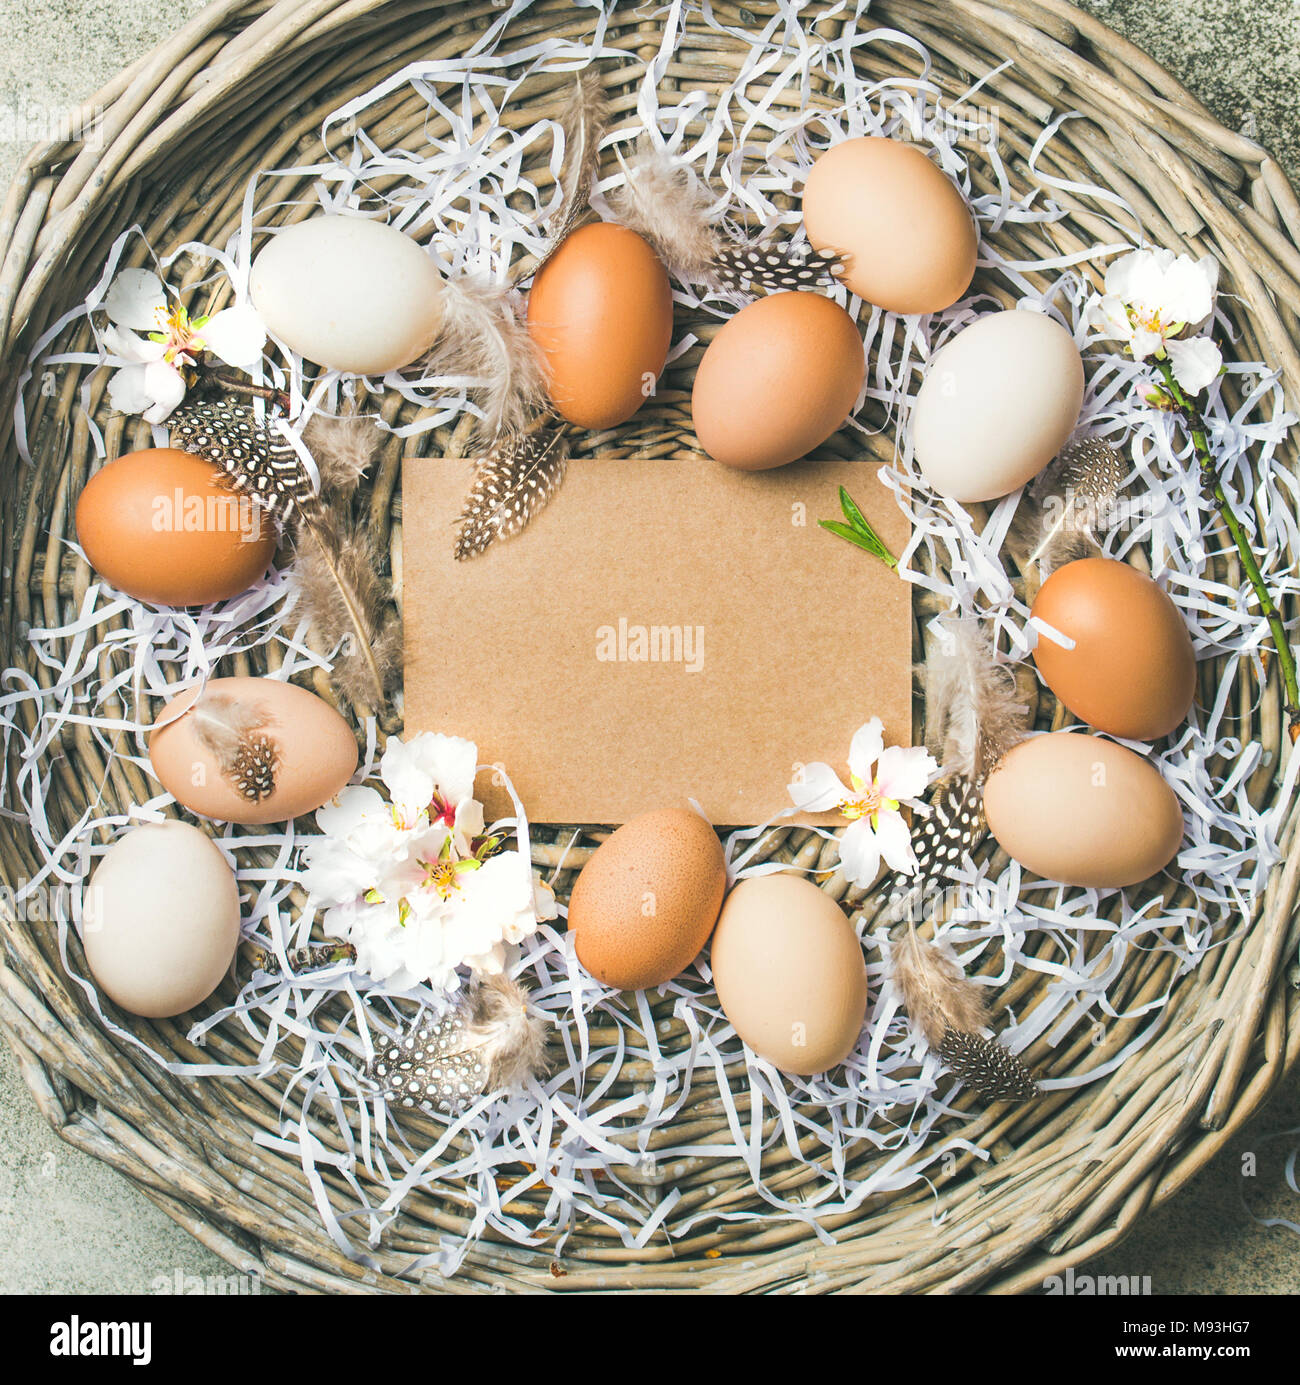 Natural colored eggs for Easter in basket over grey background - Stock Image